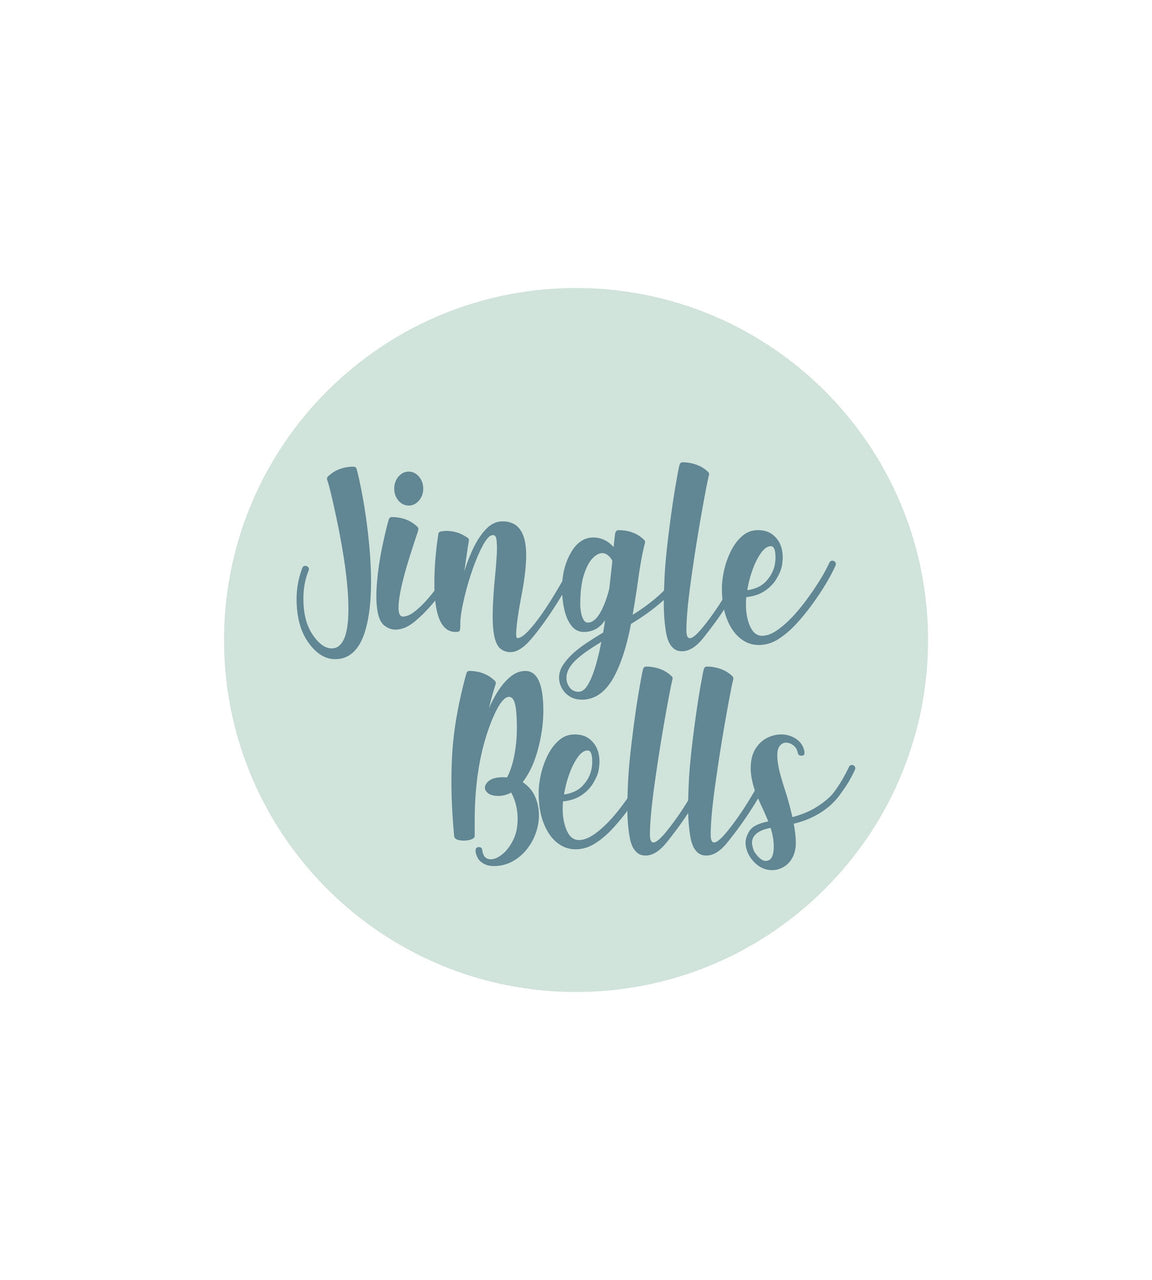 Copy of Christmas Quotes - Jingle Bells